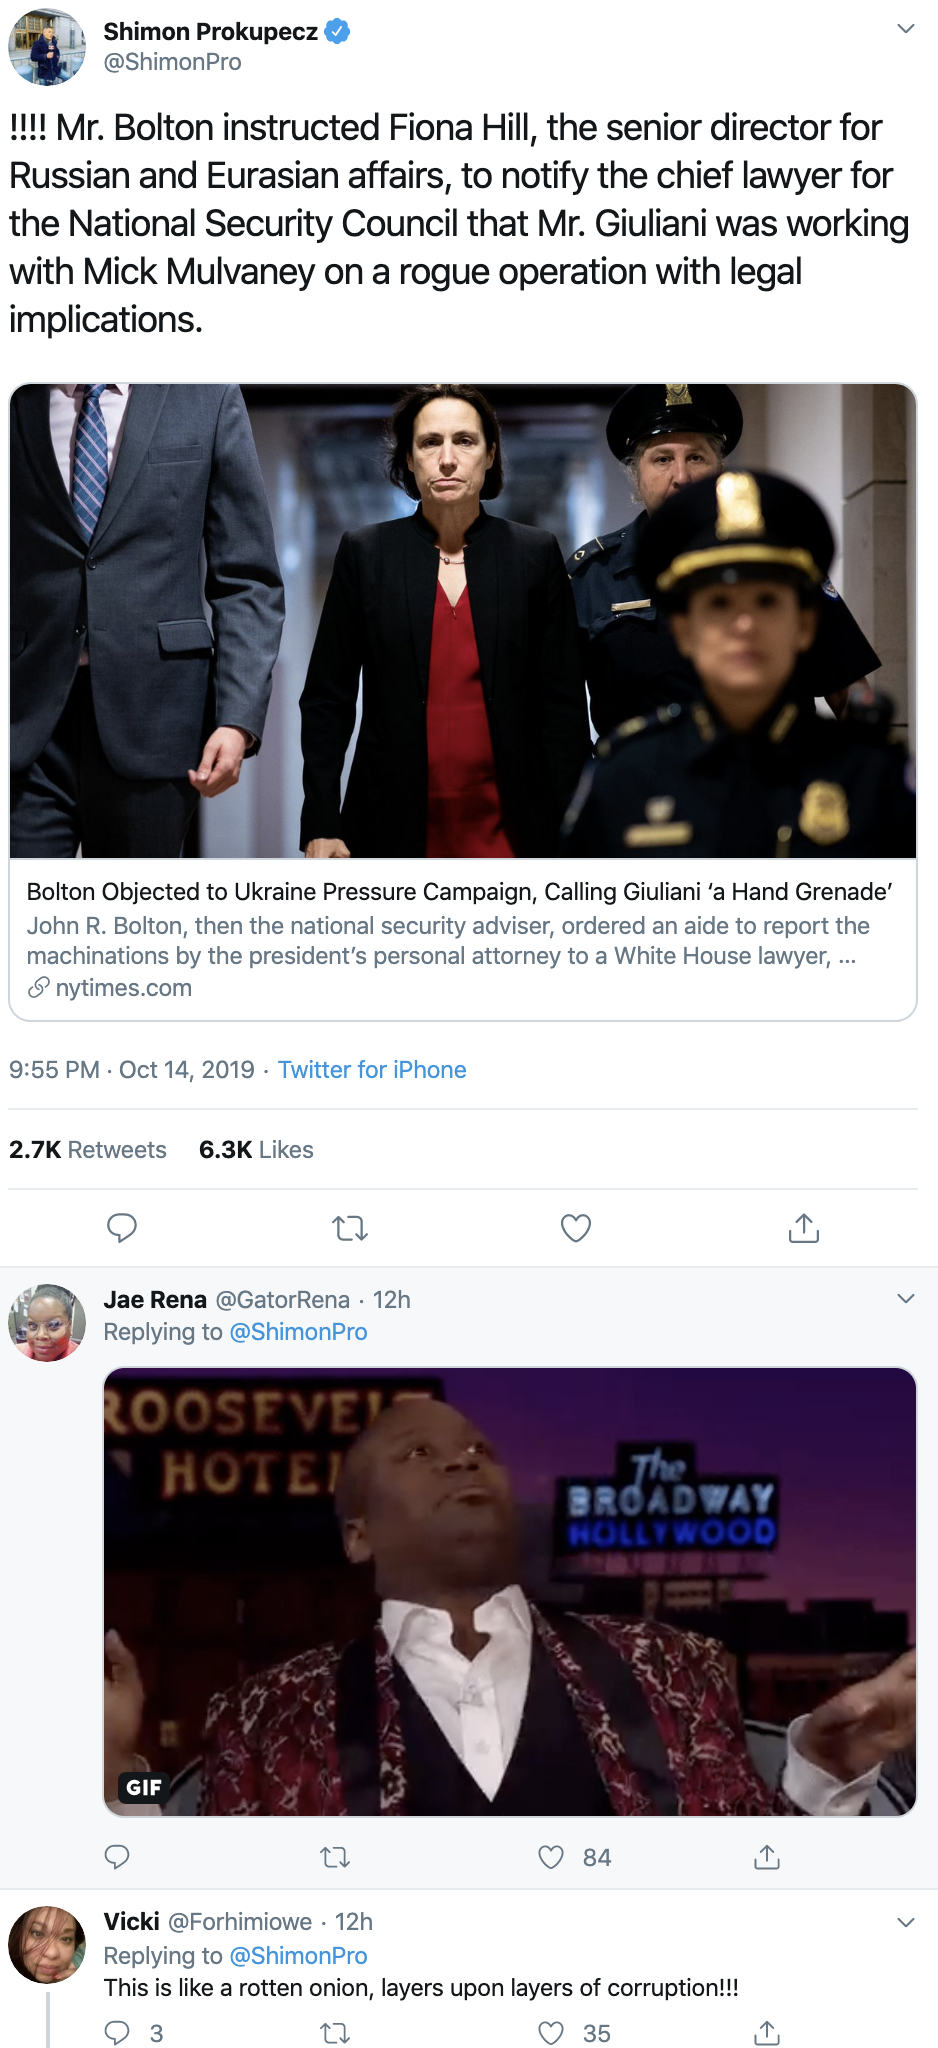 39611948-screen-shot-2019-10-15-at-10.24.34-am Trump Tries To Muzzle Top Expert's Impeachment Testimony Corruption Crime Domestic Policy Donald Trump Election 2016 Election 2020 Featured Feminism Foreign Policy Immigration Impeachment Military Mueller National Security Politics Robert Mueller Scandal Top Stories War Women's Rights